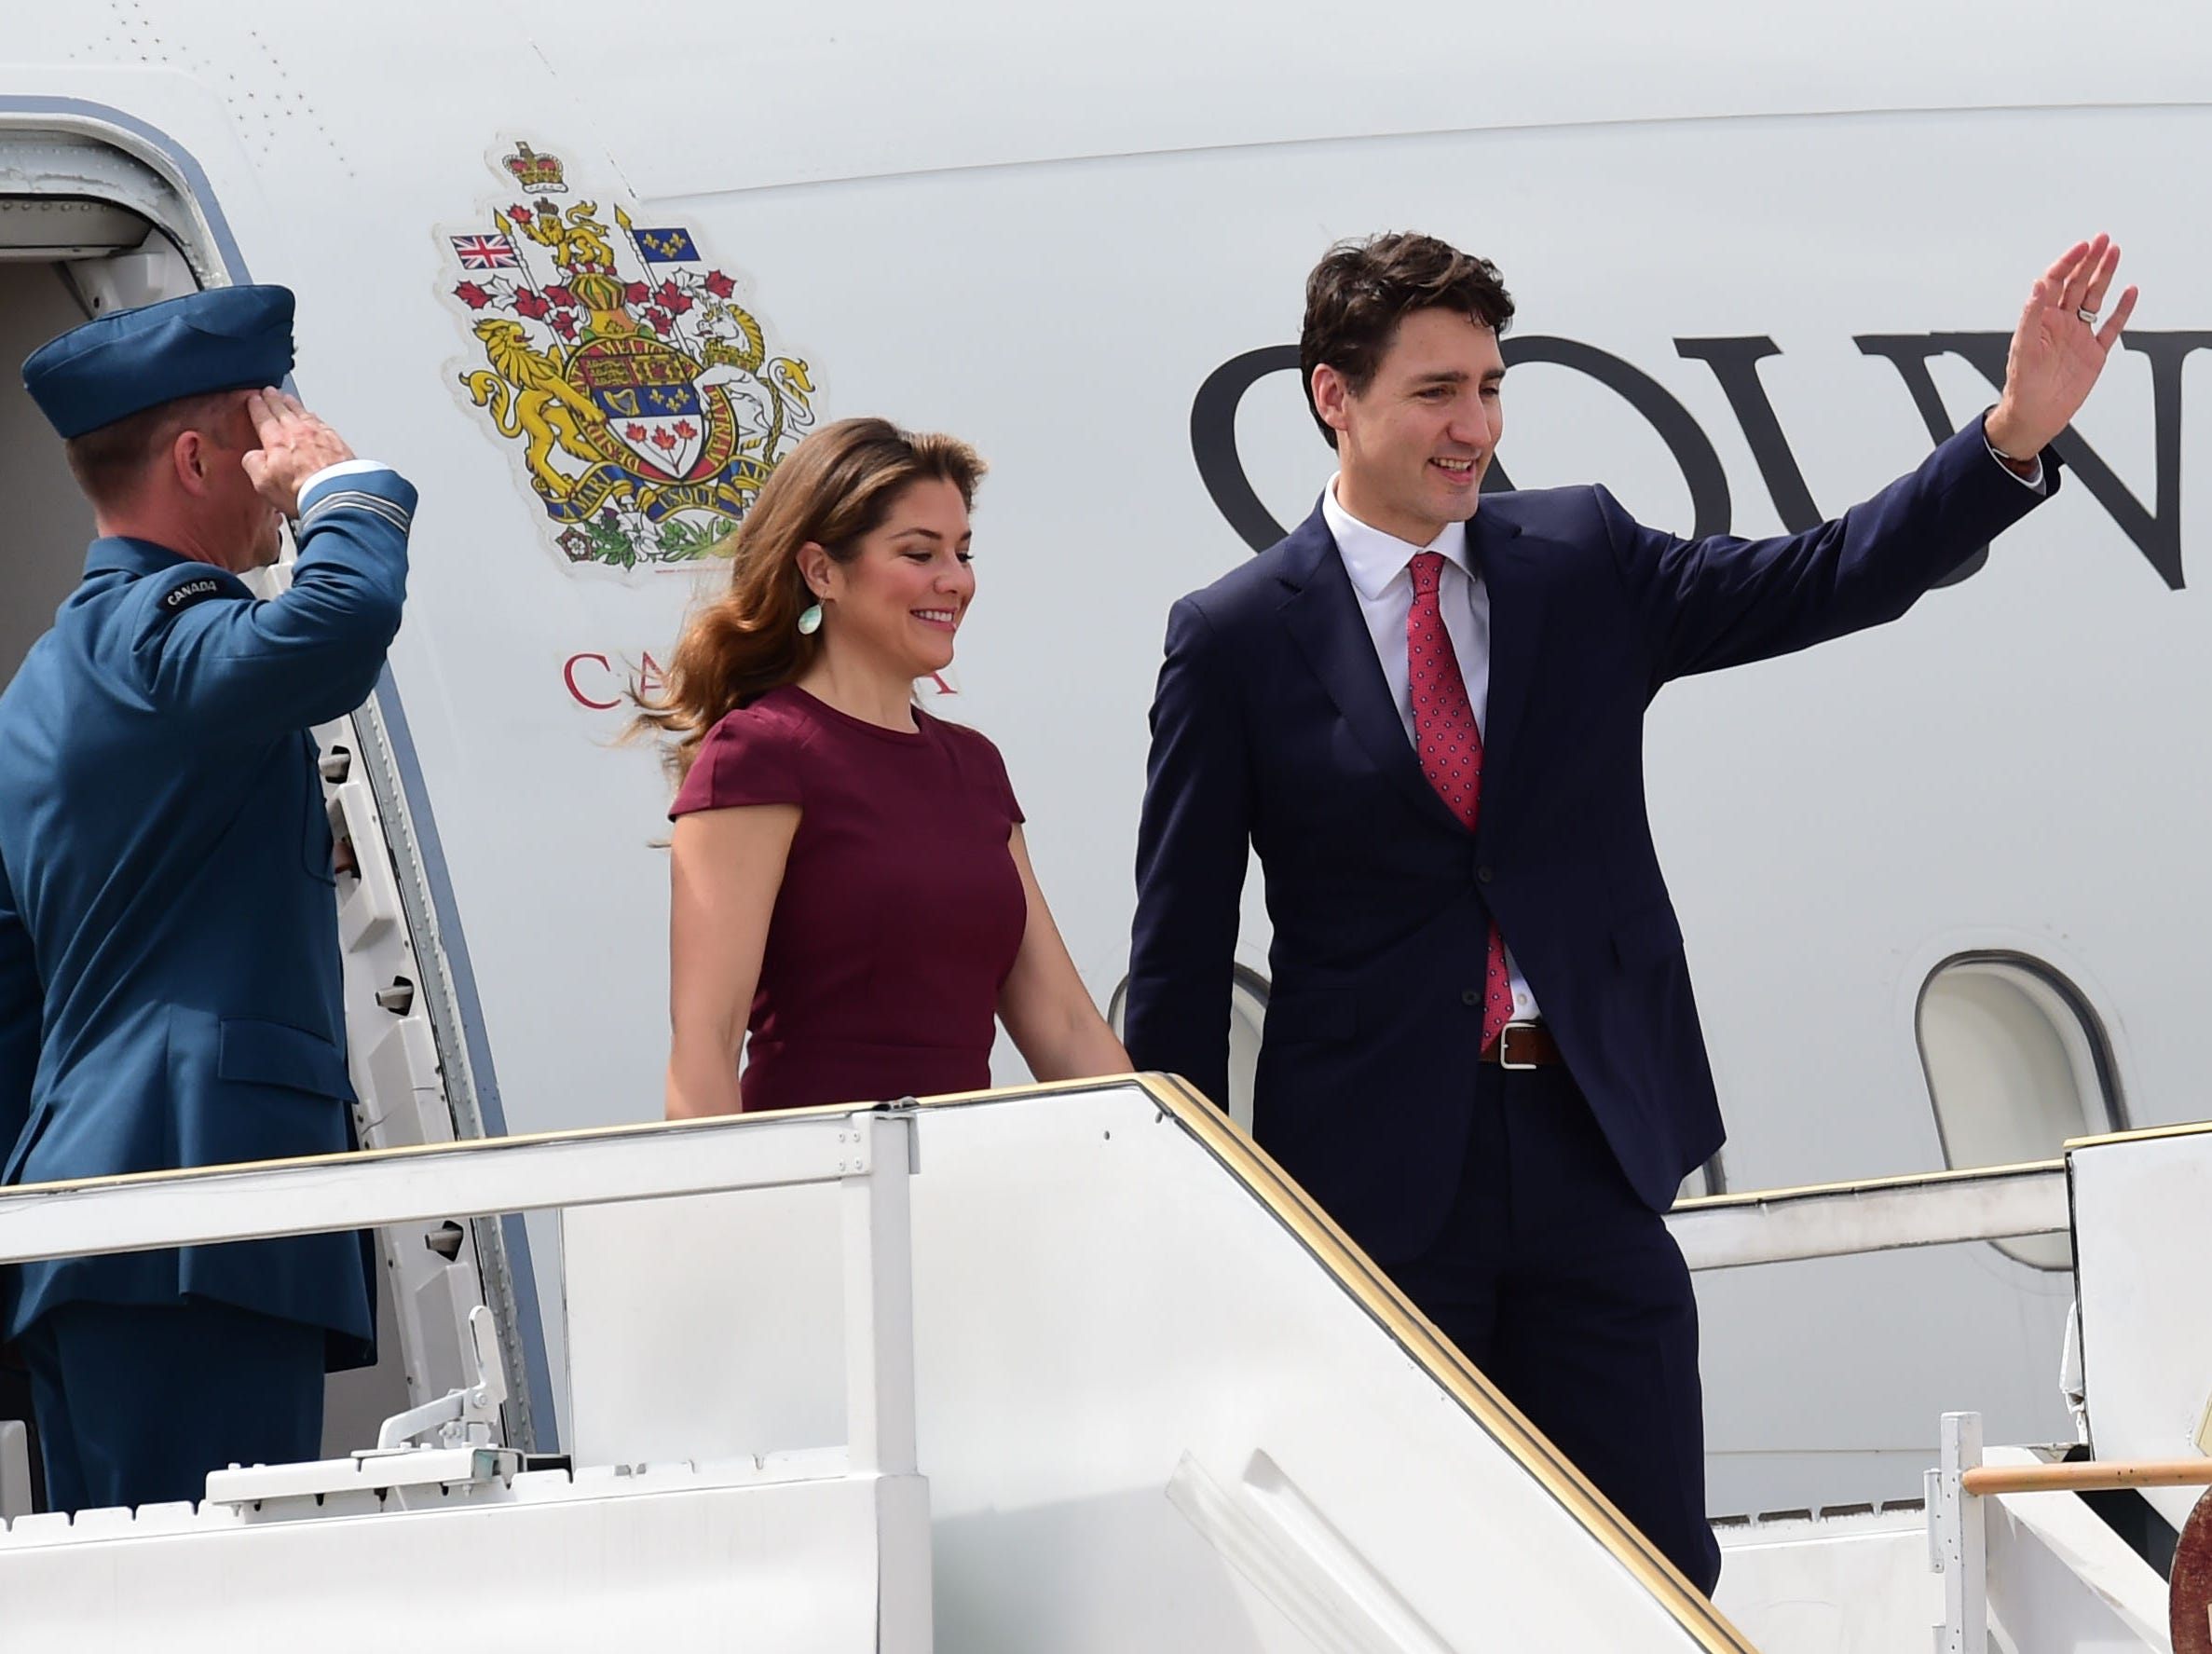 Canada's Prime Minister Justin Trudeau (R) and his wife Sophie Gregoire, wave upon arrival at Ezeiza International airport in Buenos Aires province, on November 29, 2018. - Global leaders gather in the Argentine capital for a two-day G20 summit beginning on Friday likely to be dominated by simmering international tensions over trade. (Photo by Martin BERNETTI / AFP)        (Photo credit should read MARTIN BERNETTI/AFP/Getty Images)